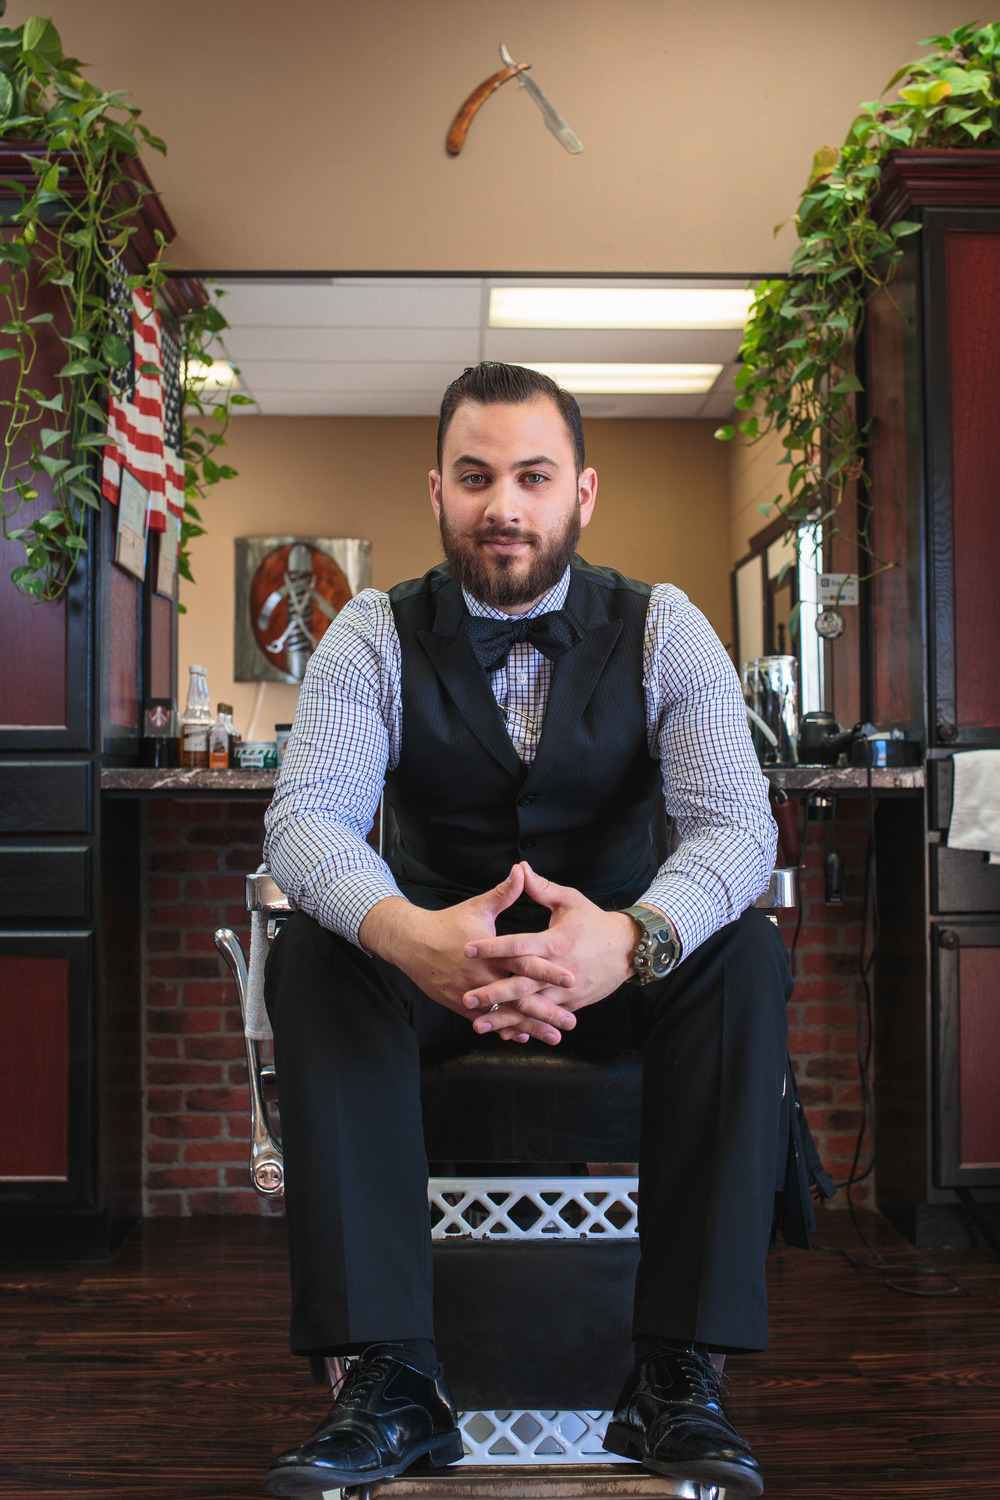 Barber Portrait Social Media Photography St George Utah